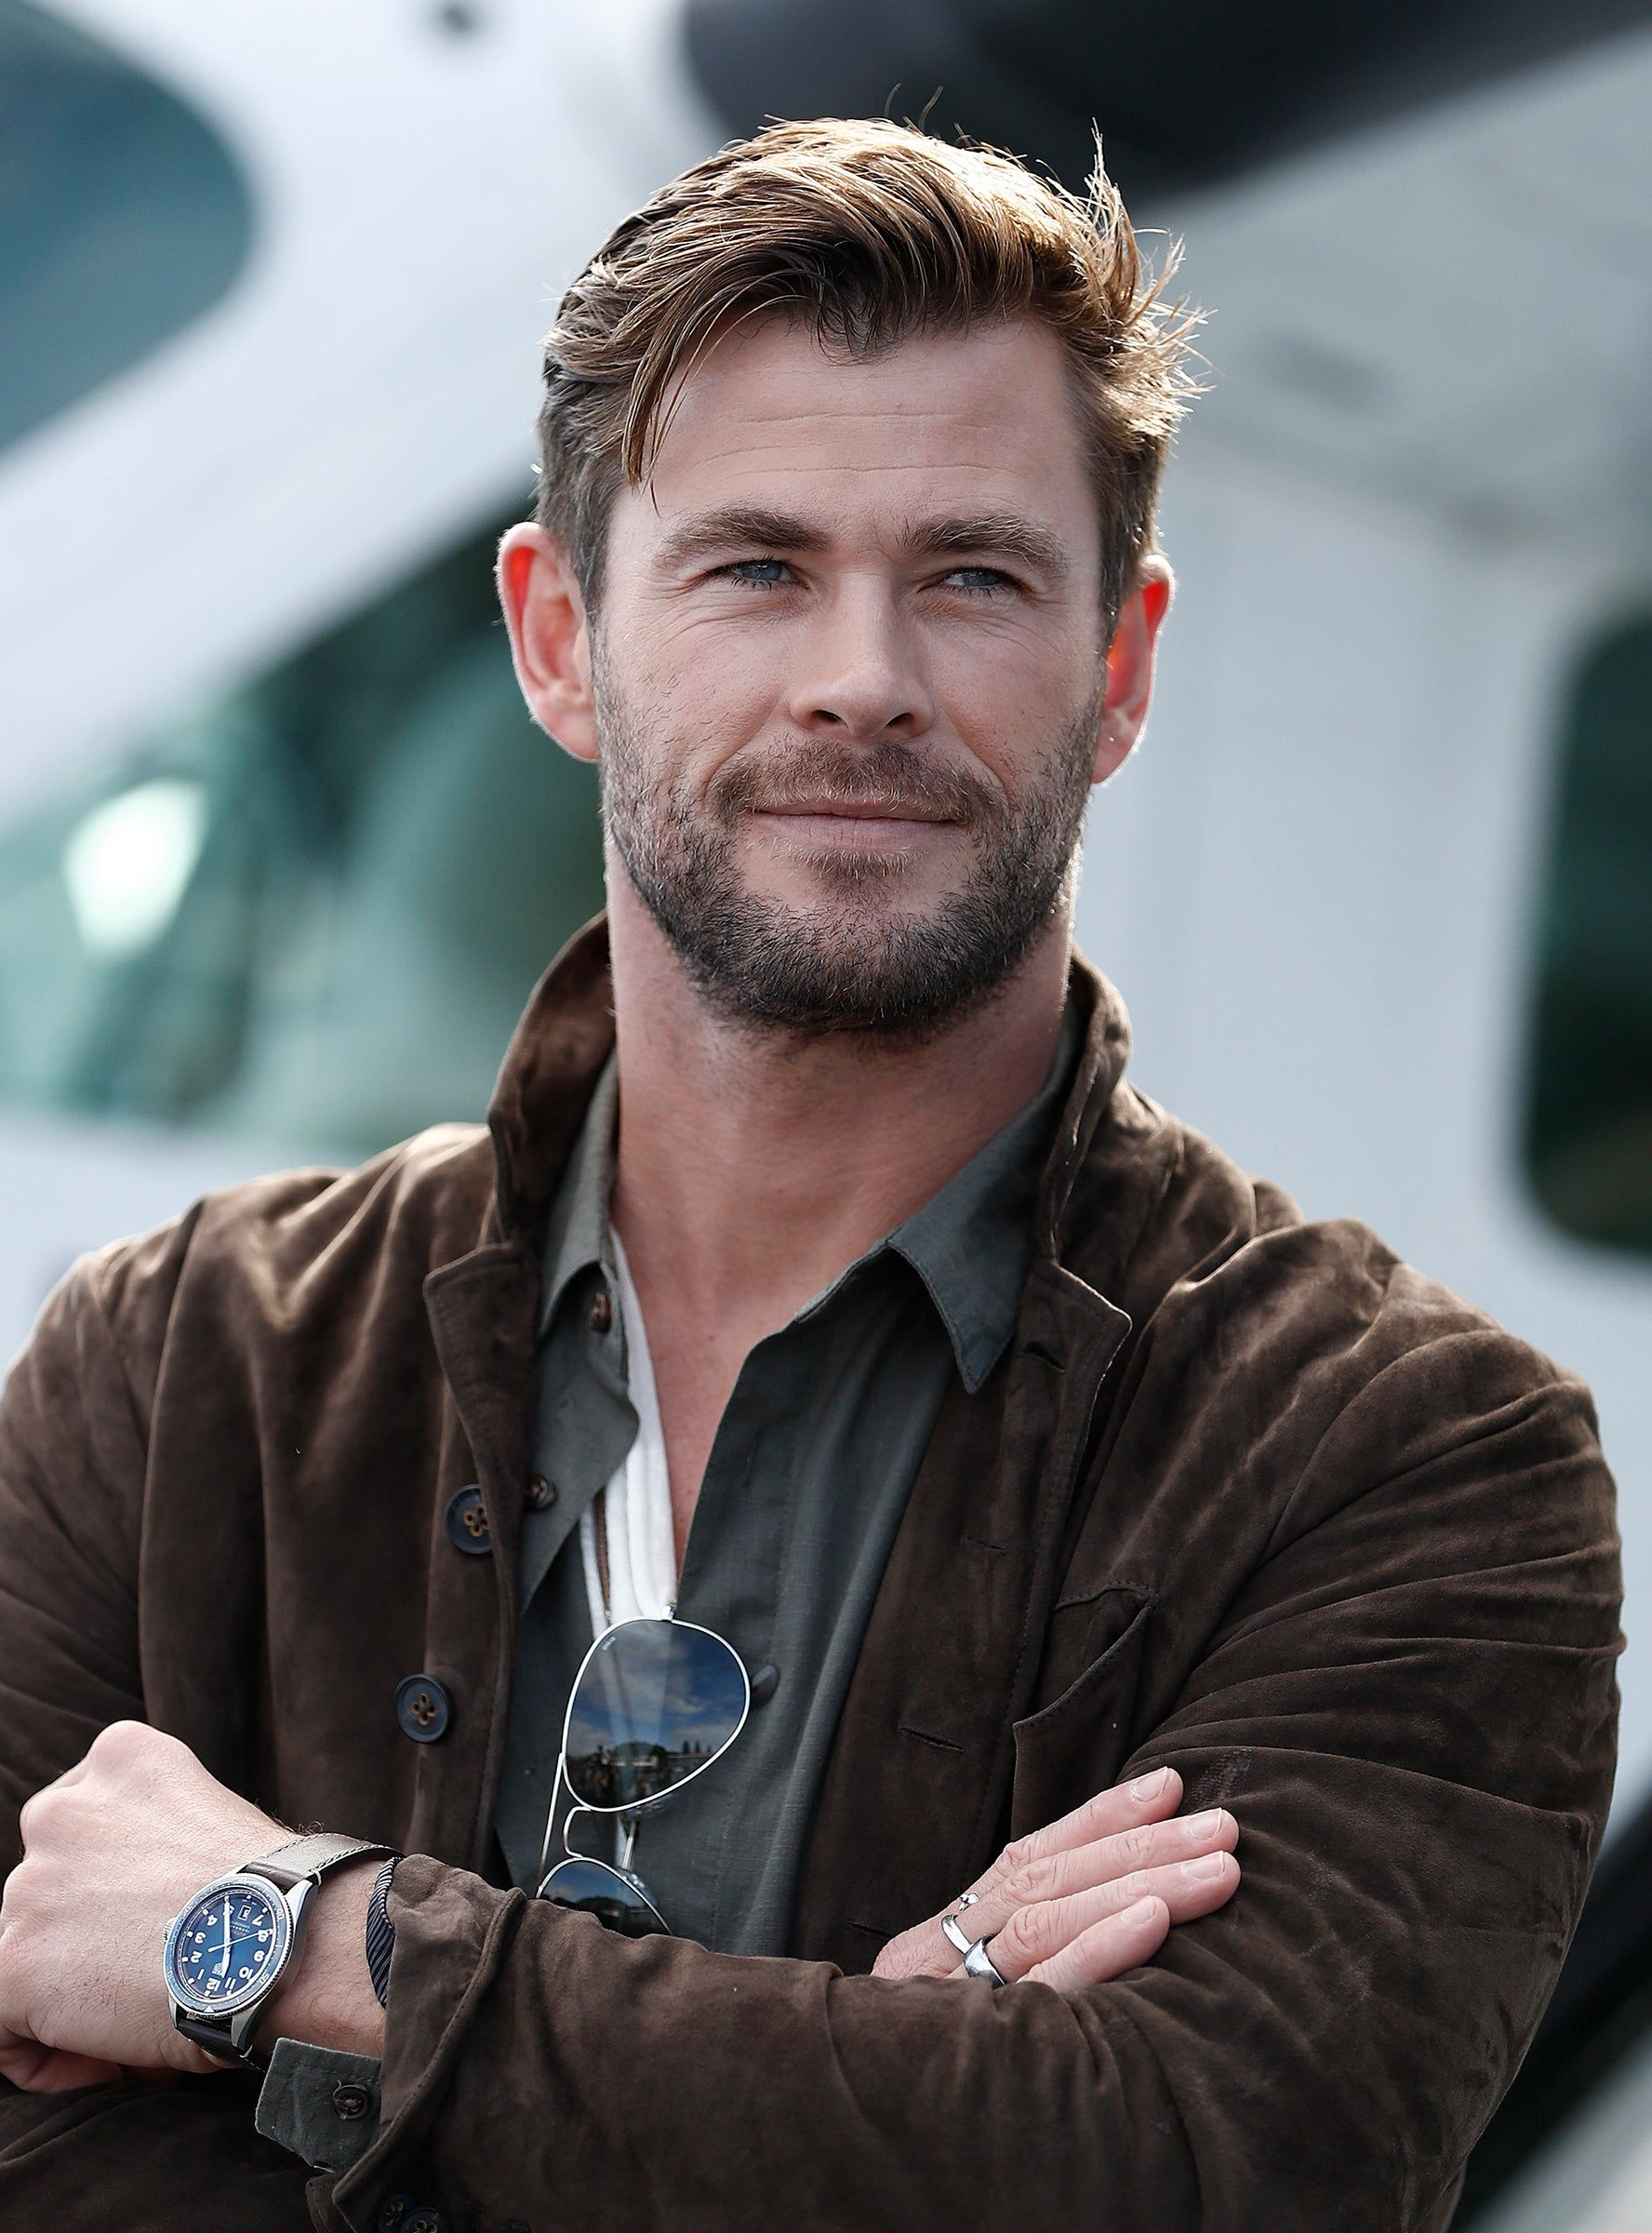 Chris Hemsworth, God Of Thirst Traps, Doesn't Know He's One, Either #hollywoodactor